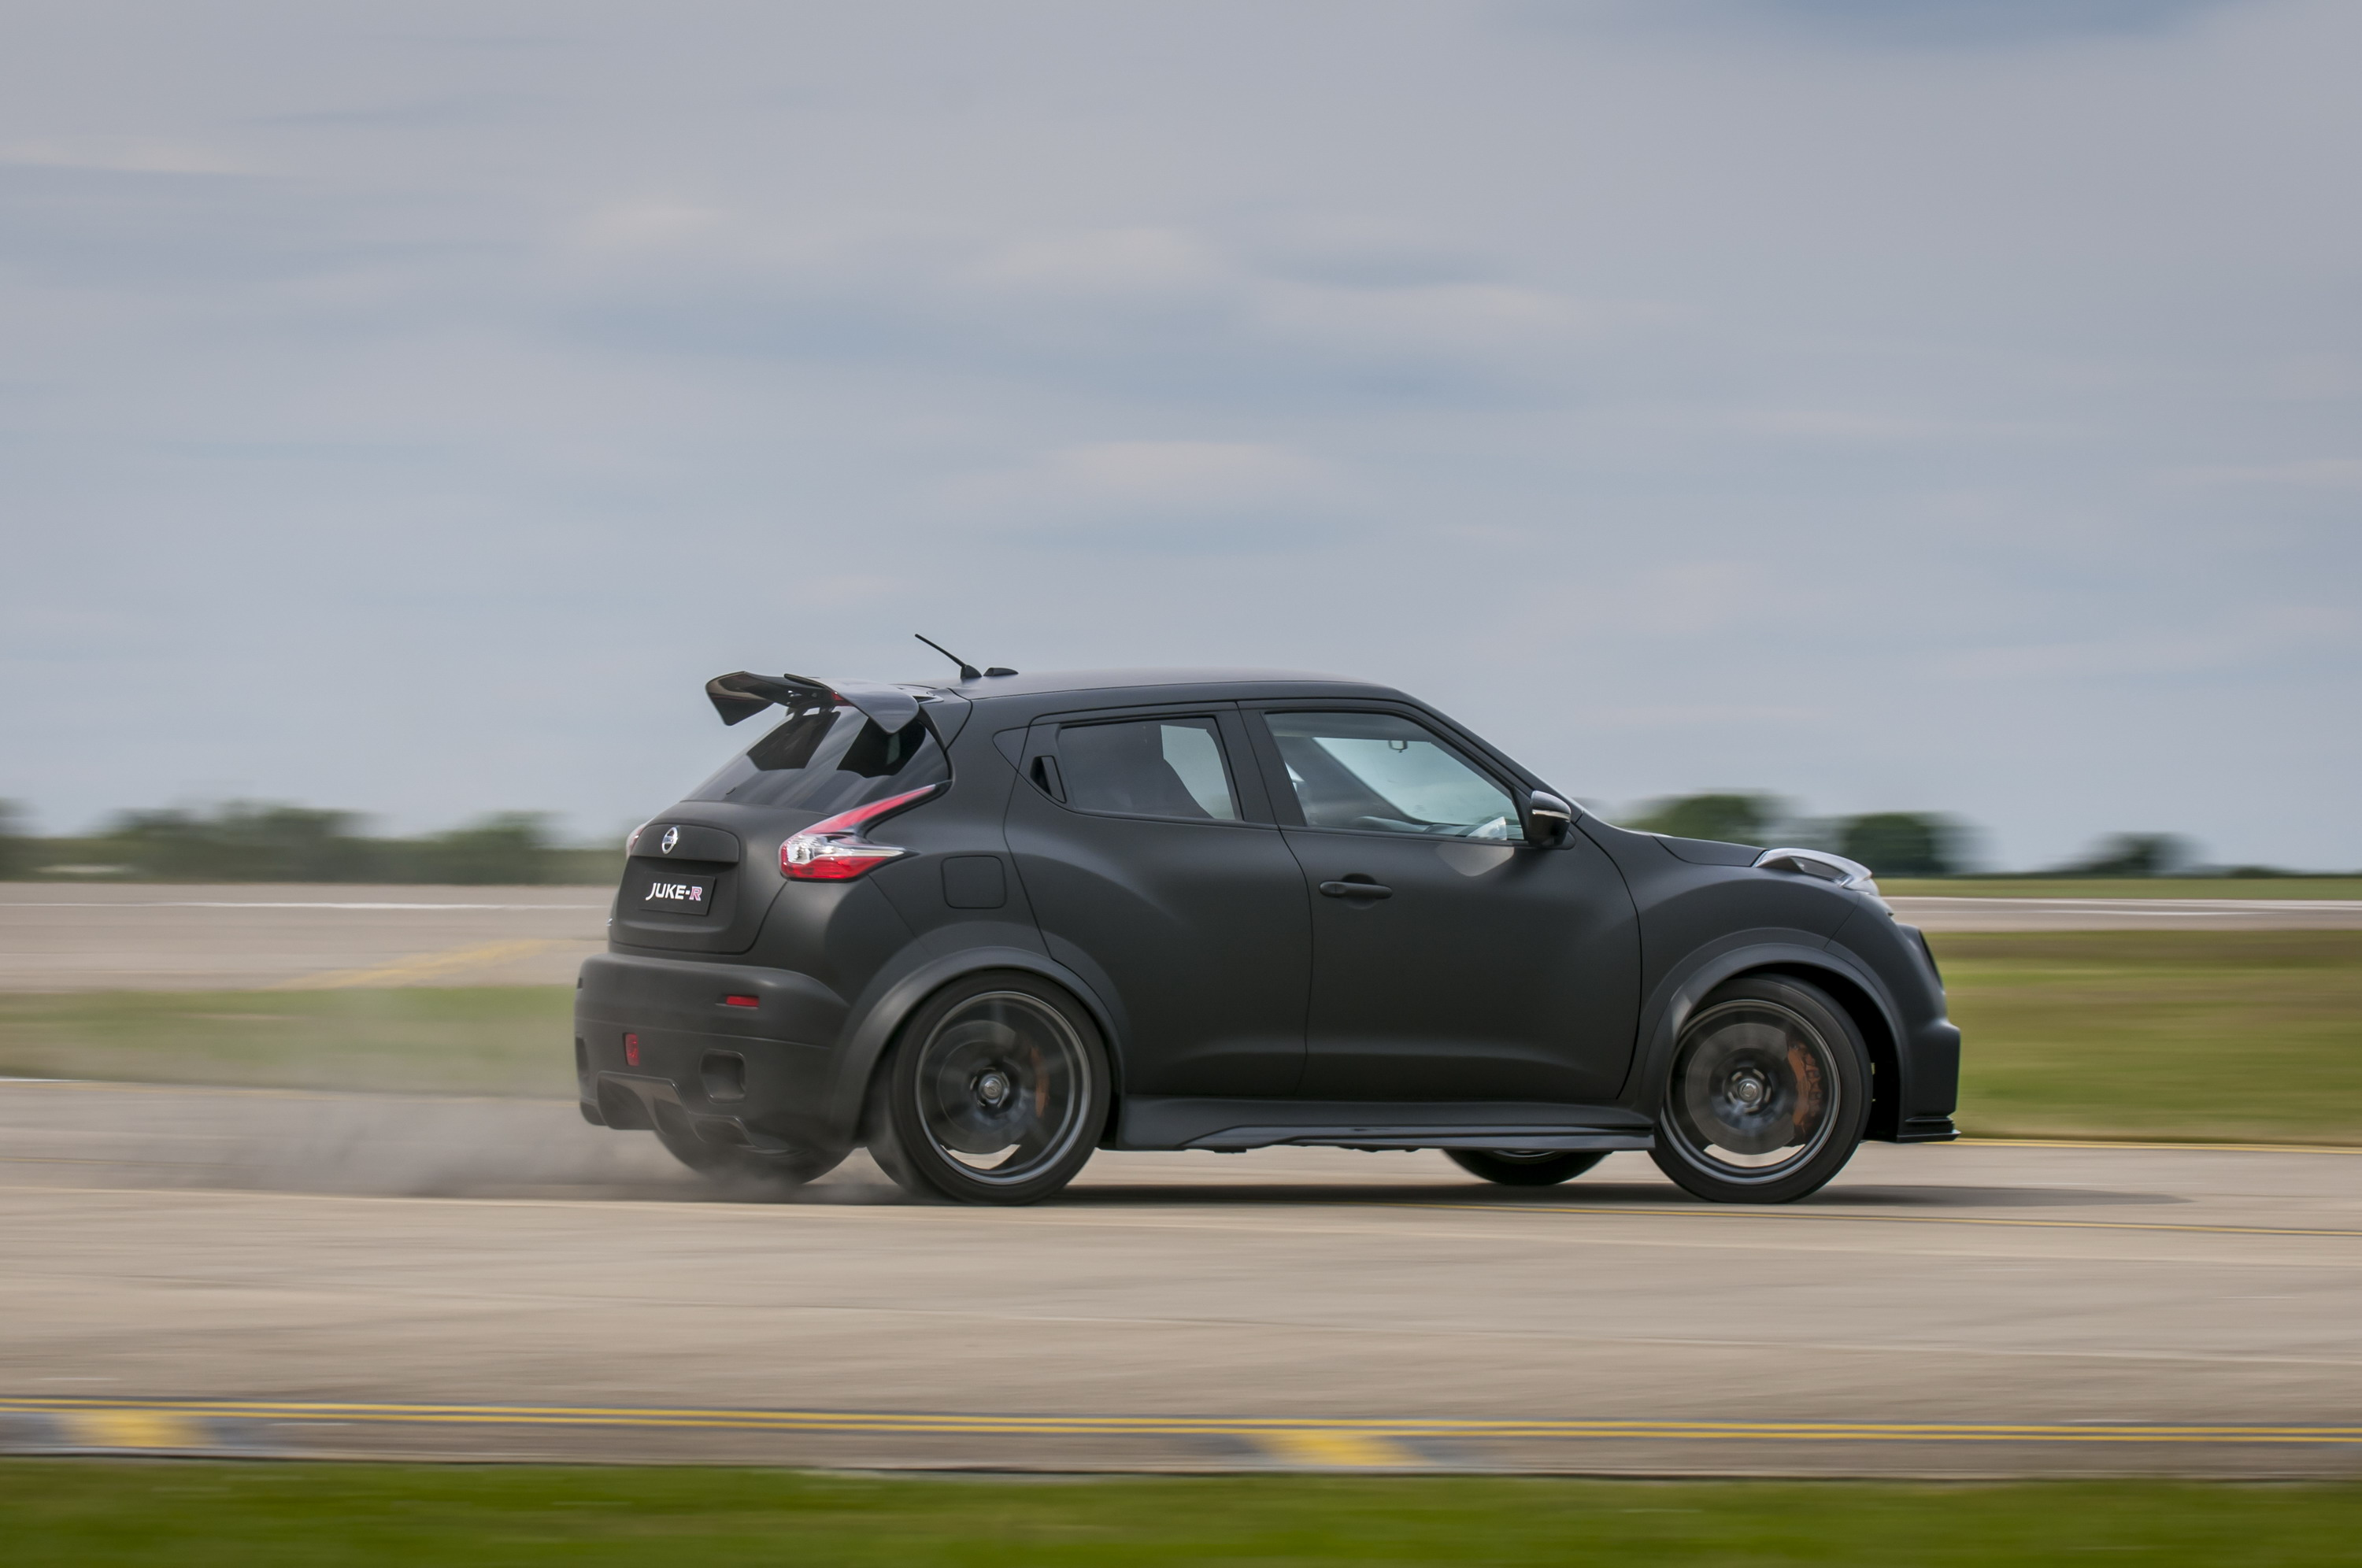 2016 nissan juke r 2 0 concept review top speed for Neuer nissan juke 2016